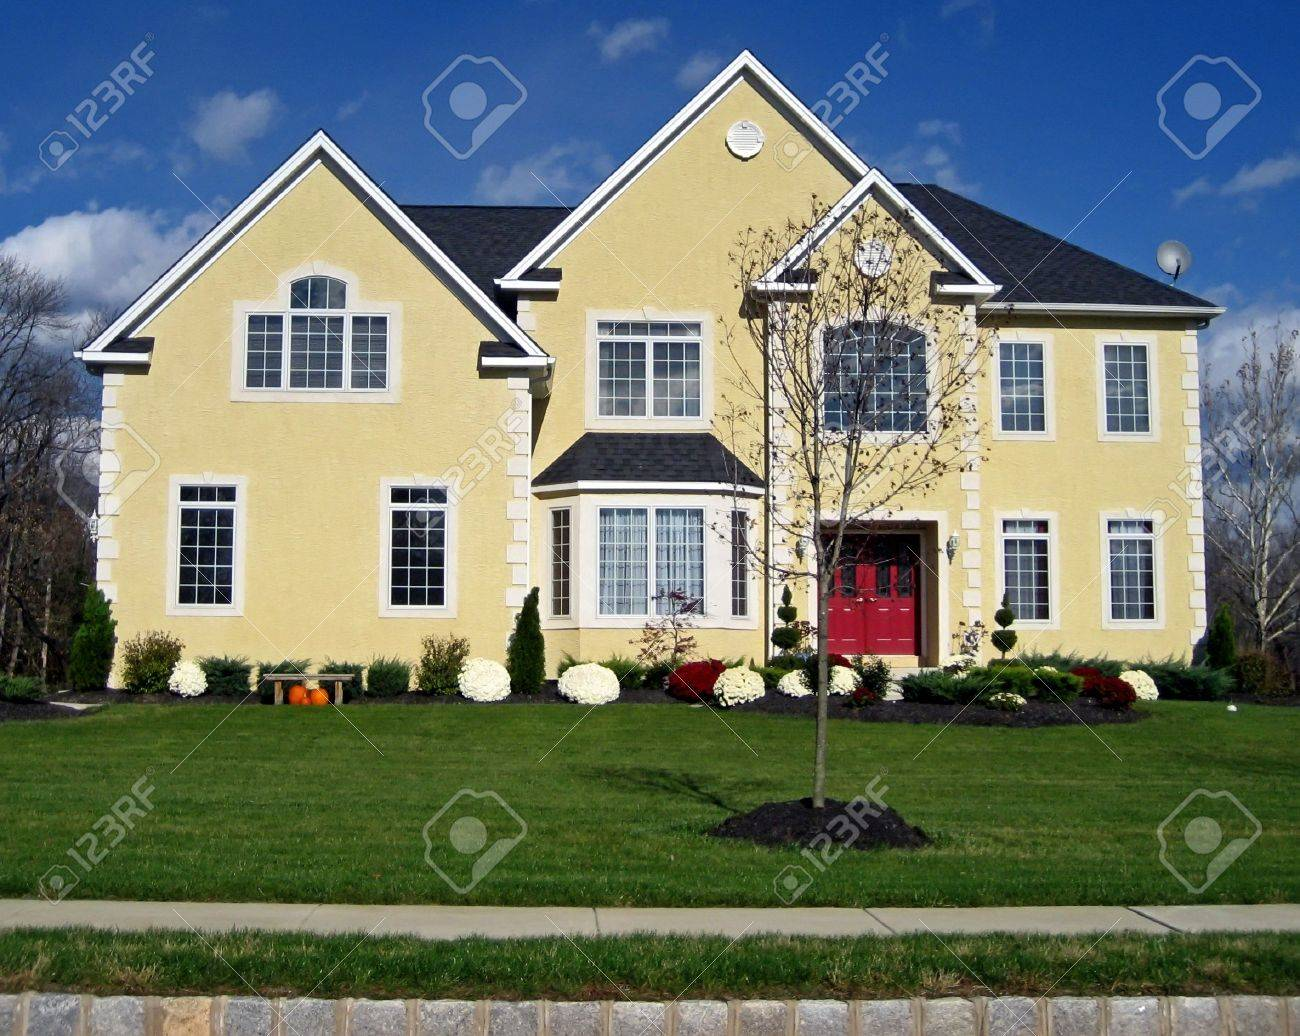 new, roomy executive style house with yellow facade and red door